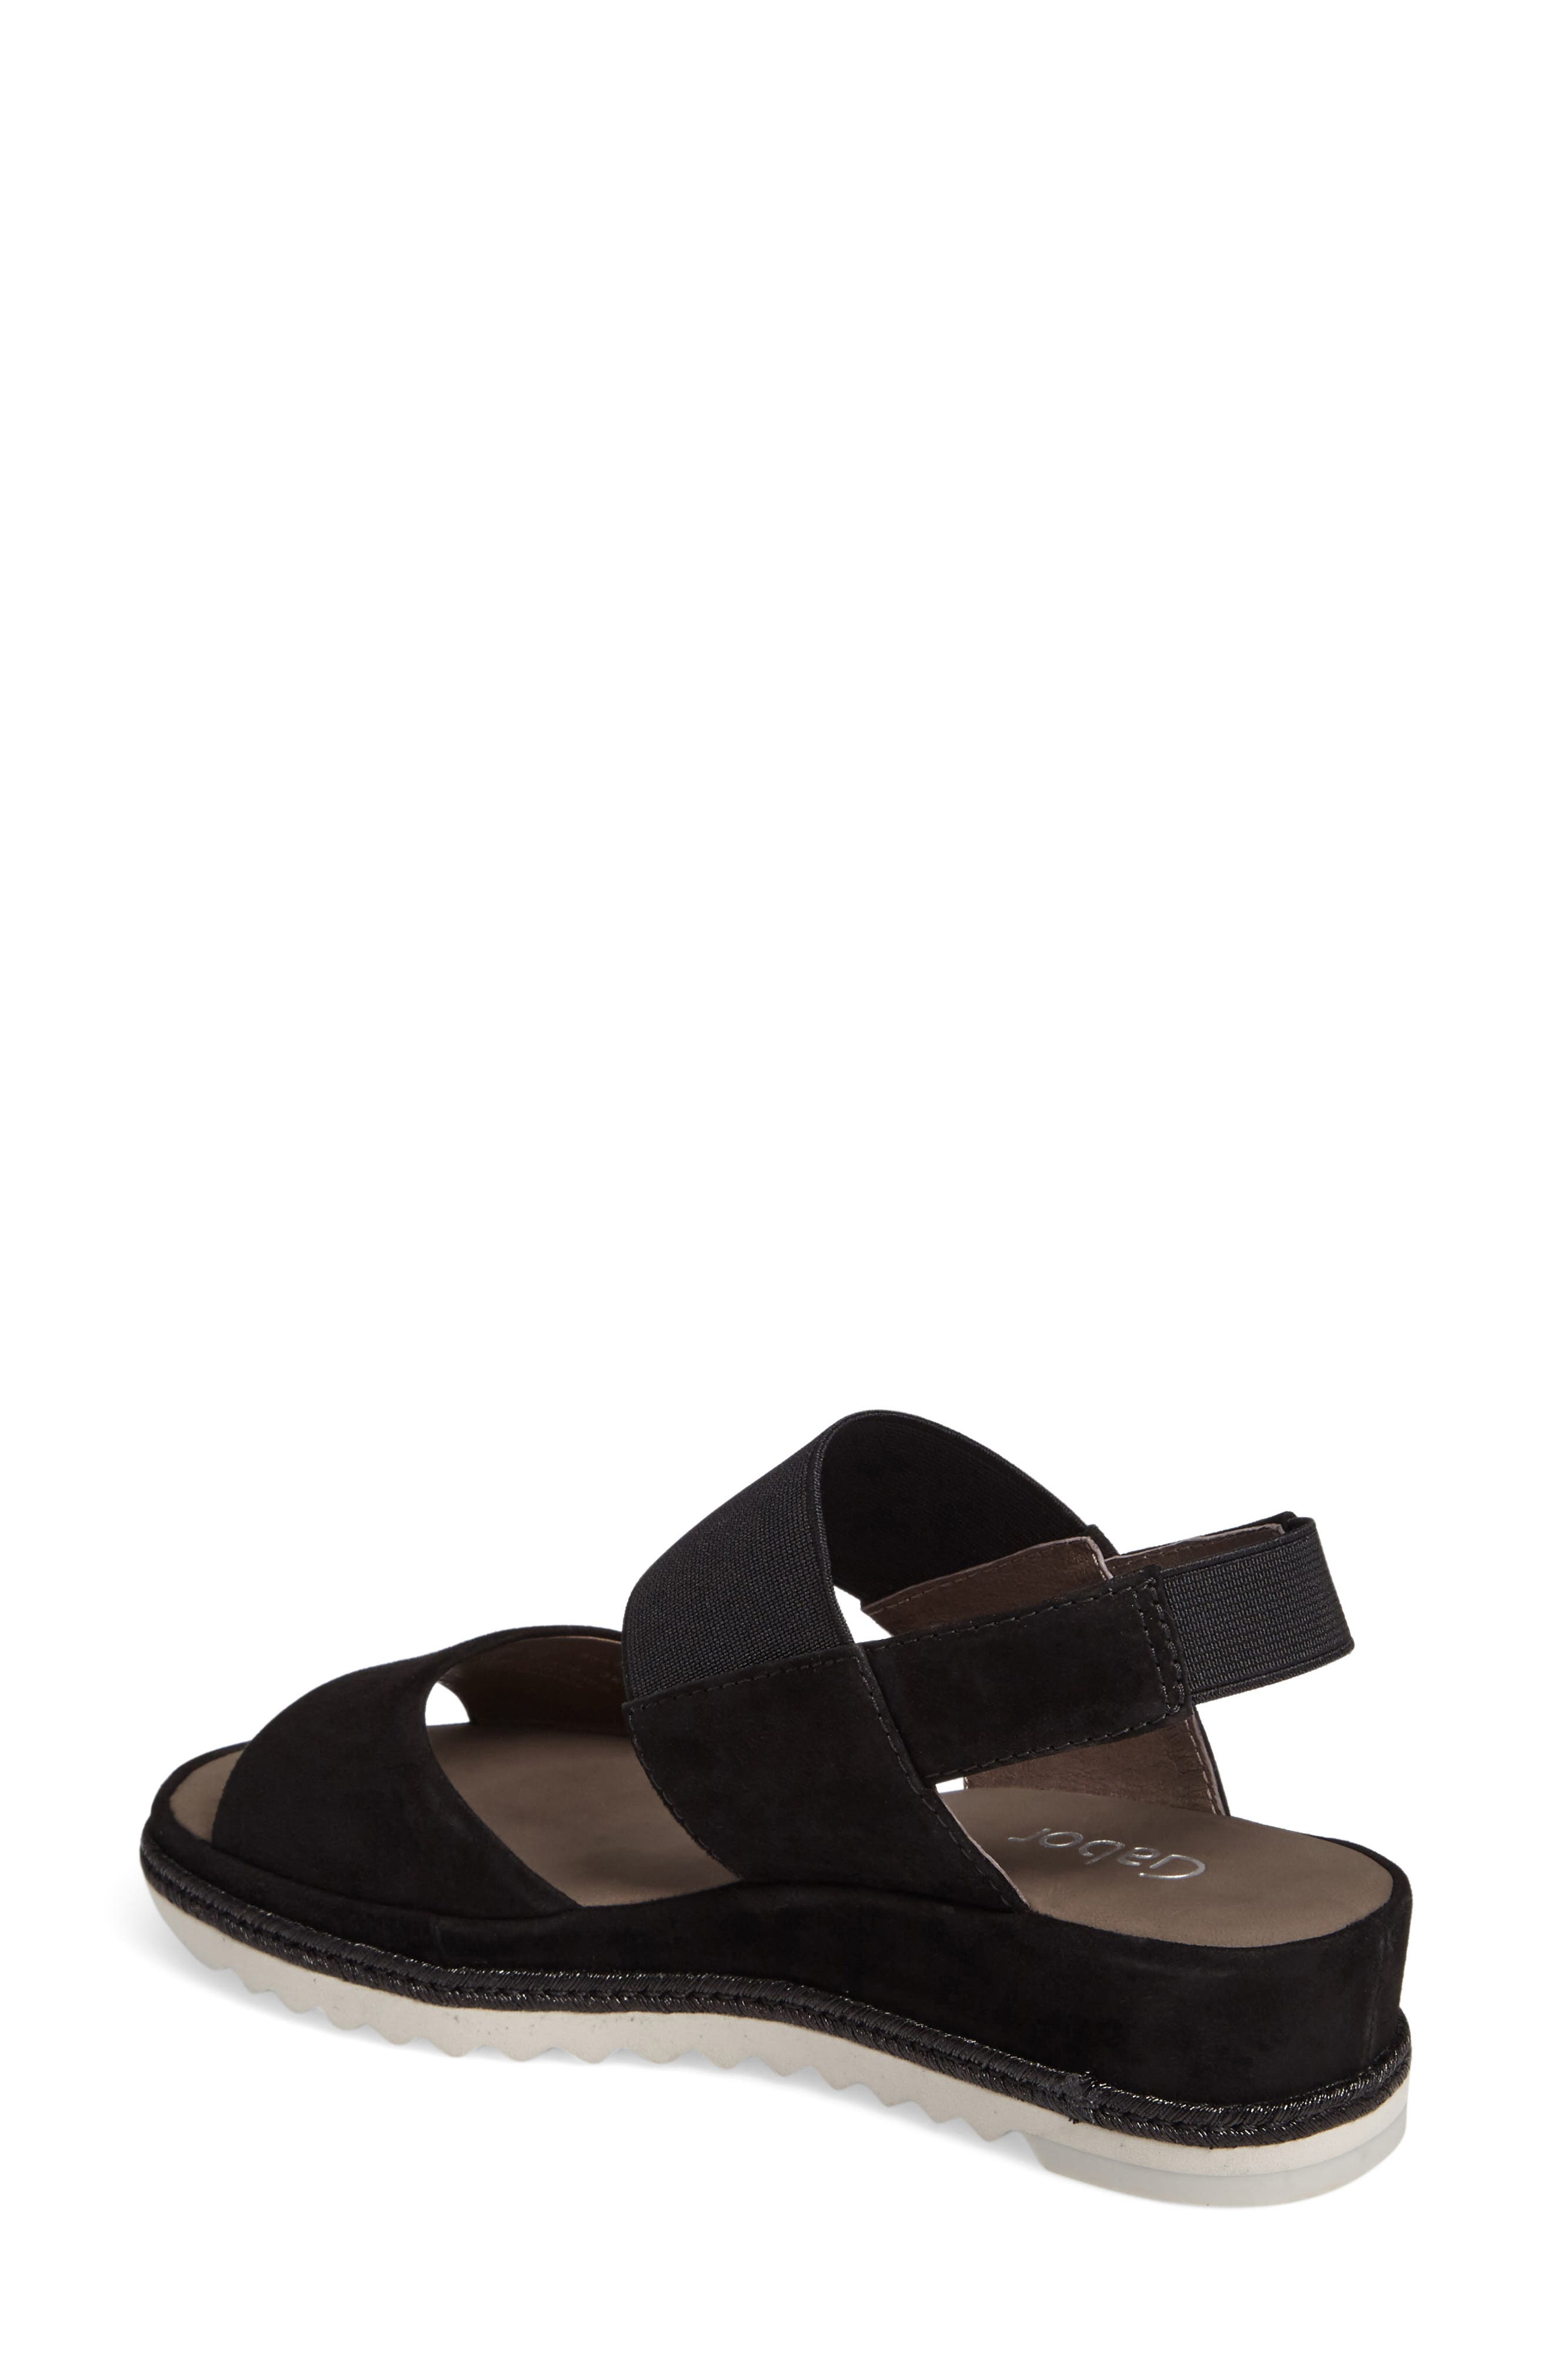 Low Wedge Sandal,                             Alternate thumbnail 2, color,                             001